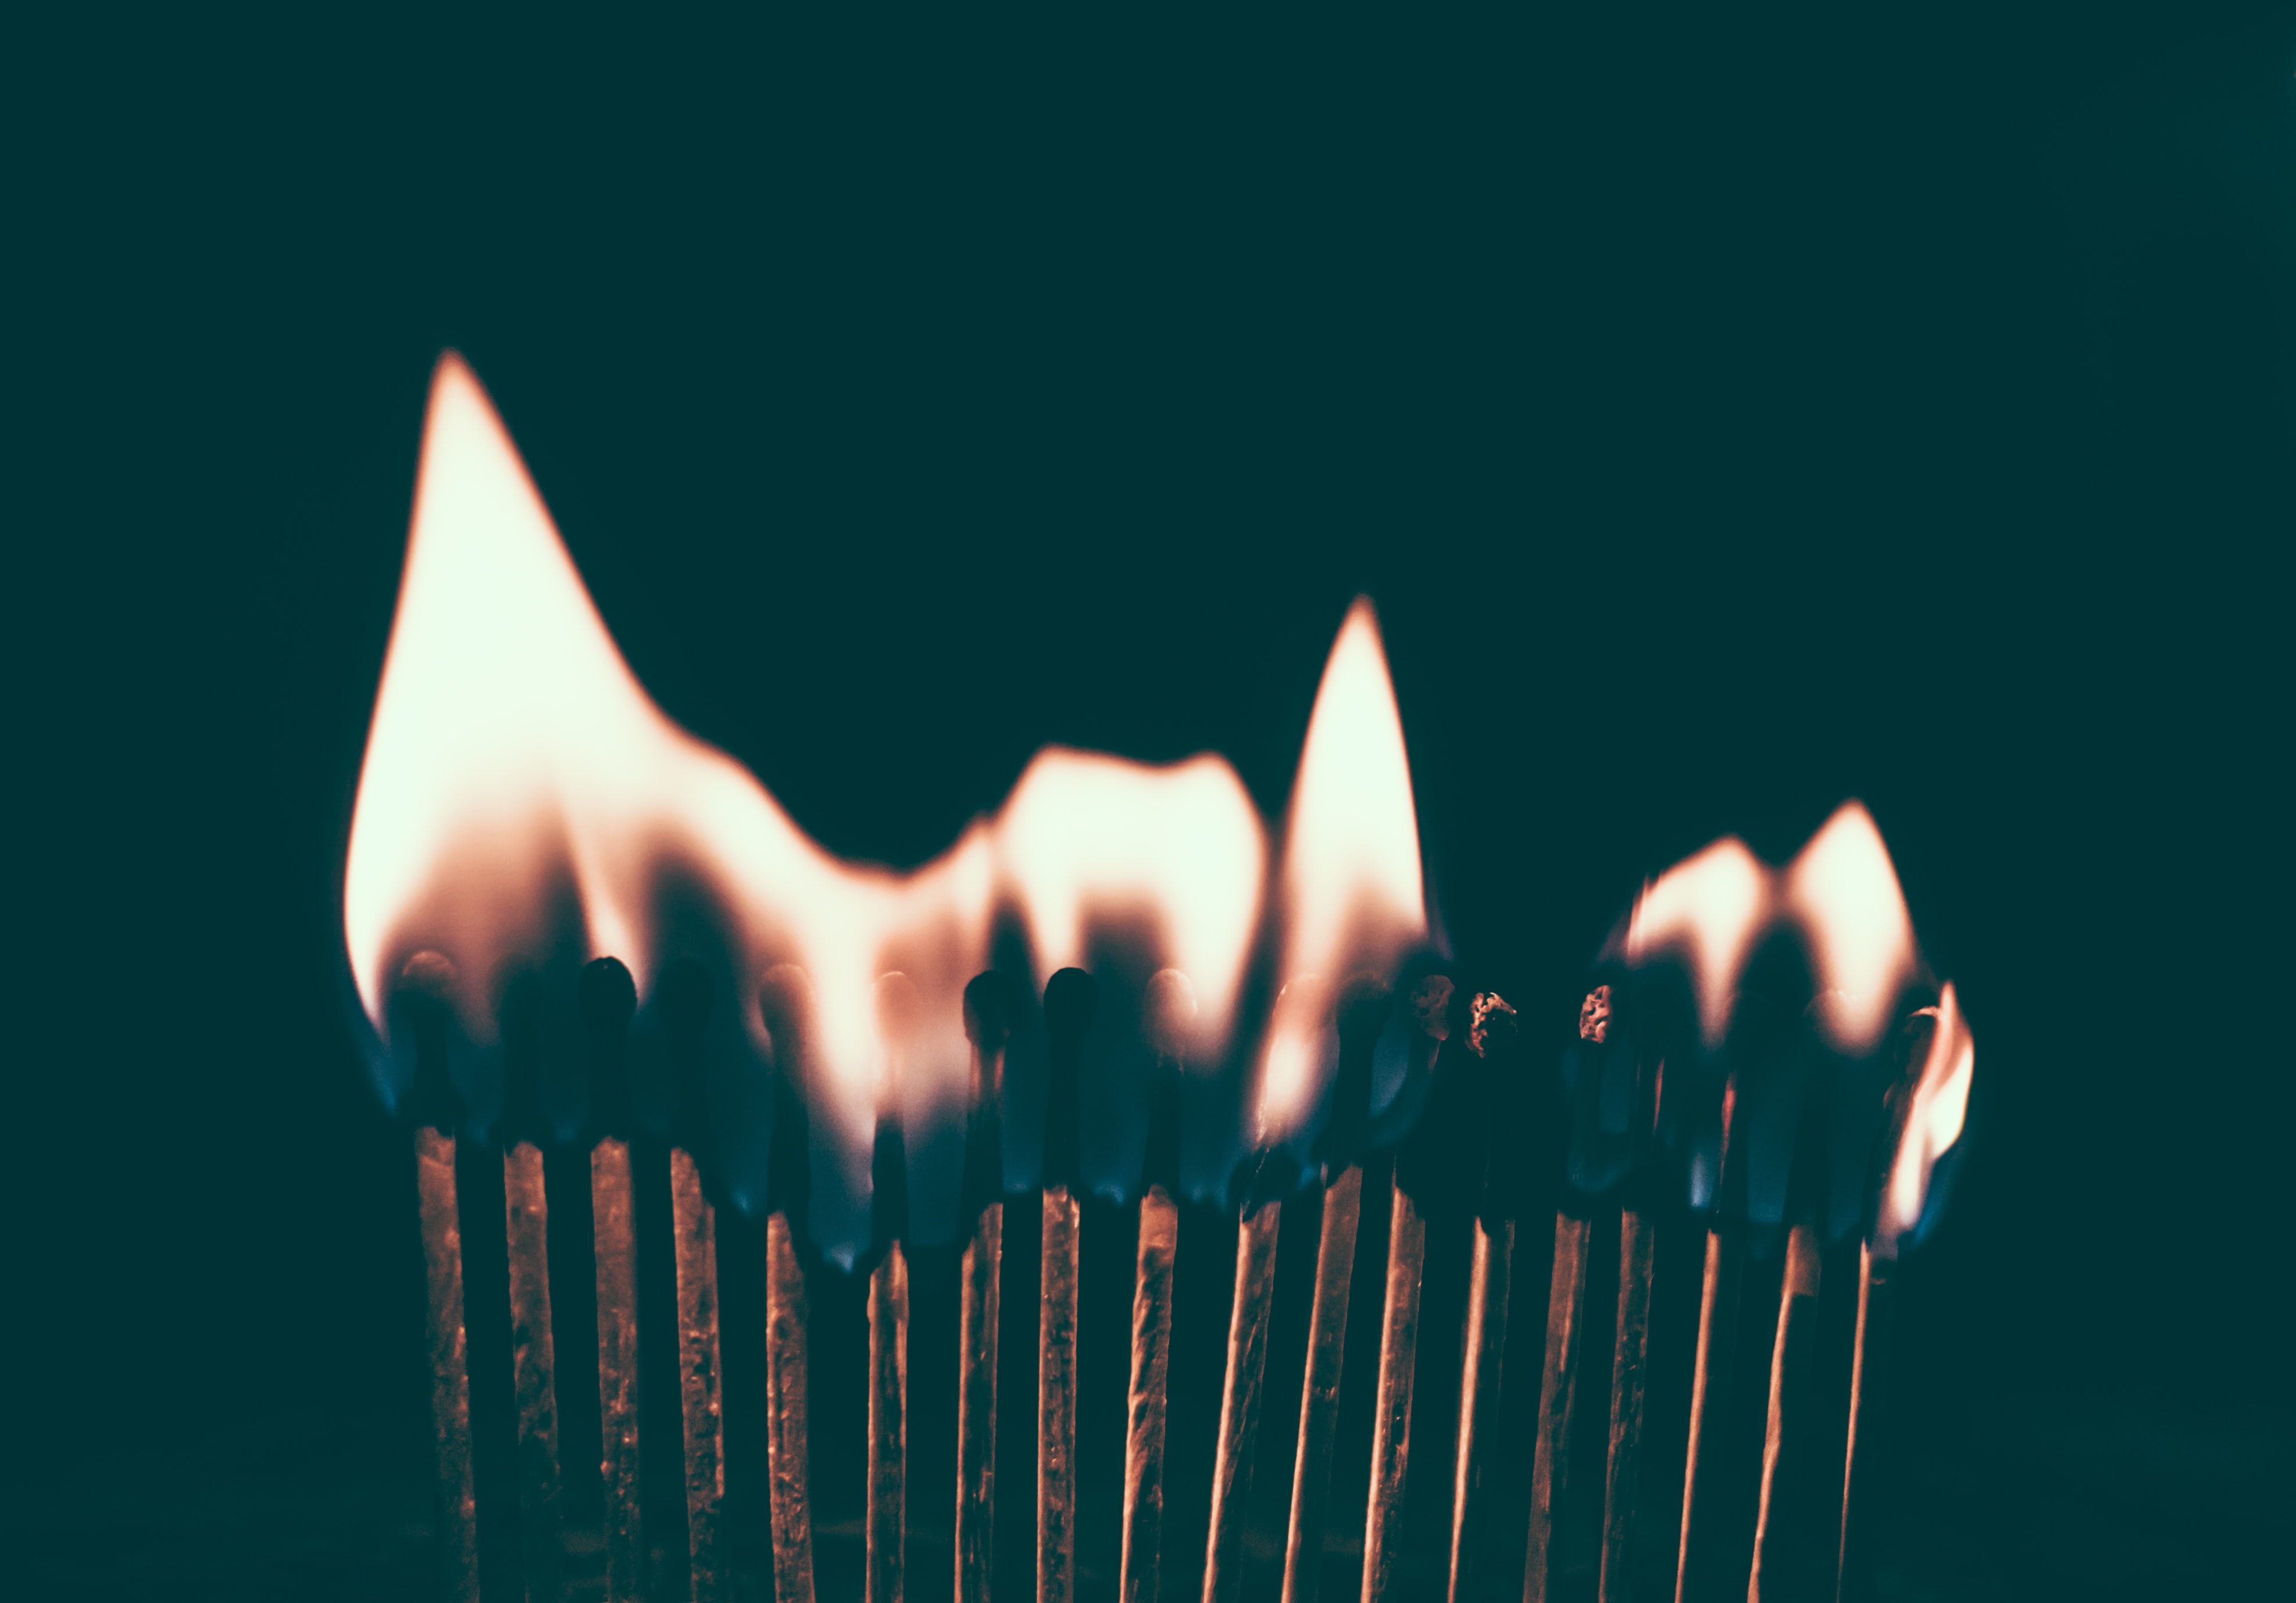 Flames ignite on a line of burning matches in the dark